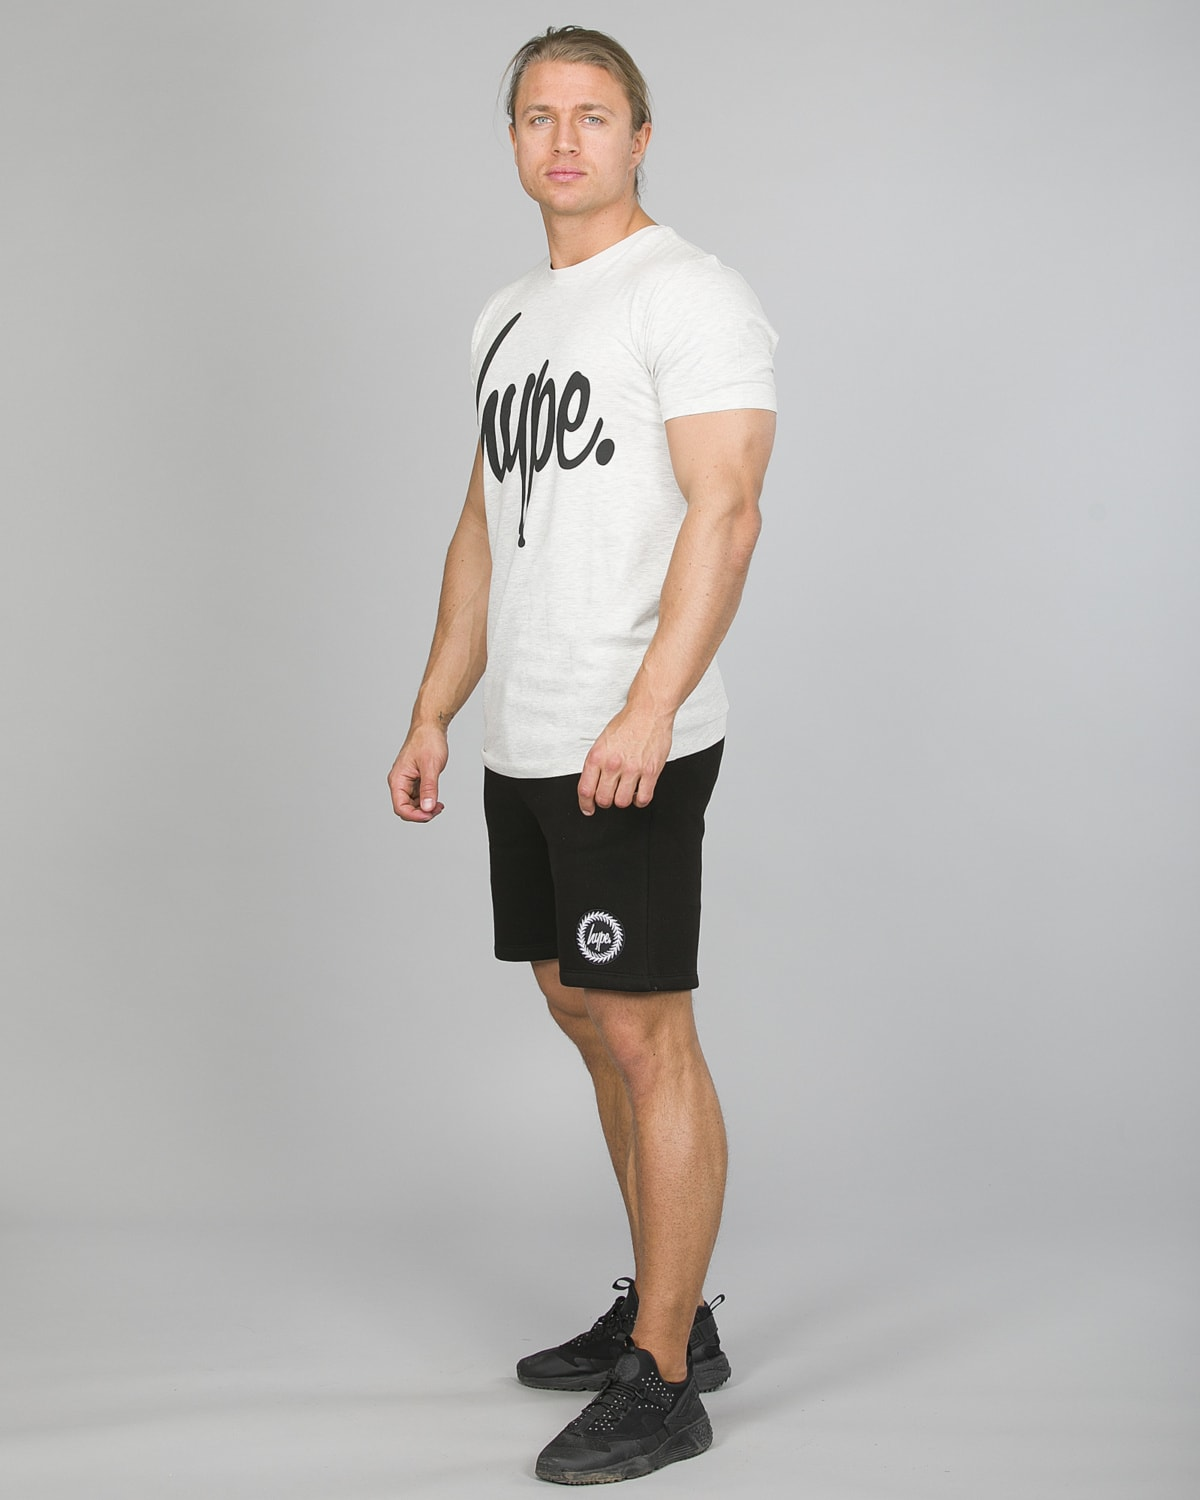 Hype Script T-Shirt Men ss18005 Charcoal and Crest Shorts ss18336b Black b